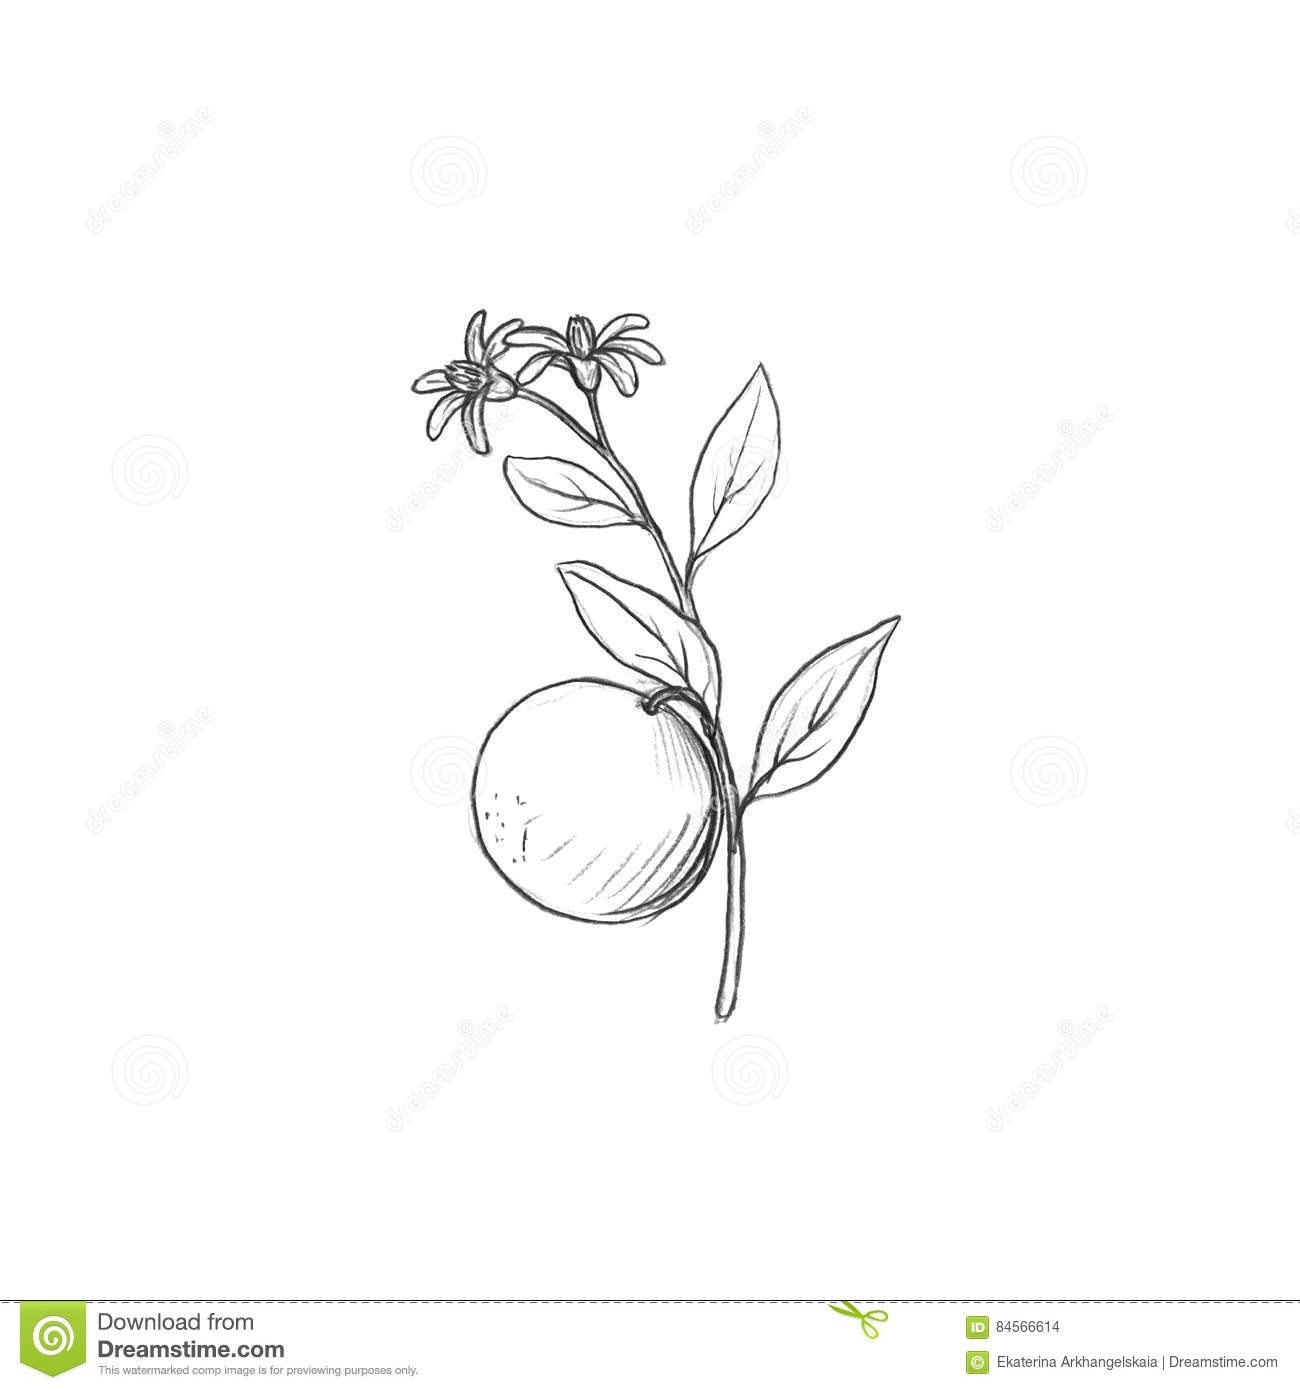 Orange tree branch with fruits leaves buds and flowers drawing by graphite pencilisolated hand drawn elements